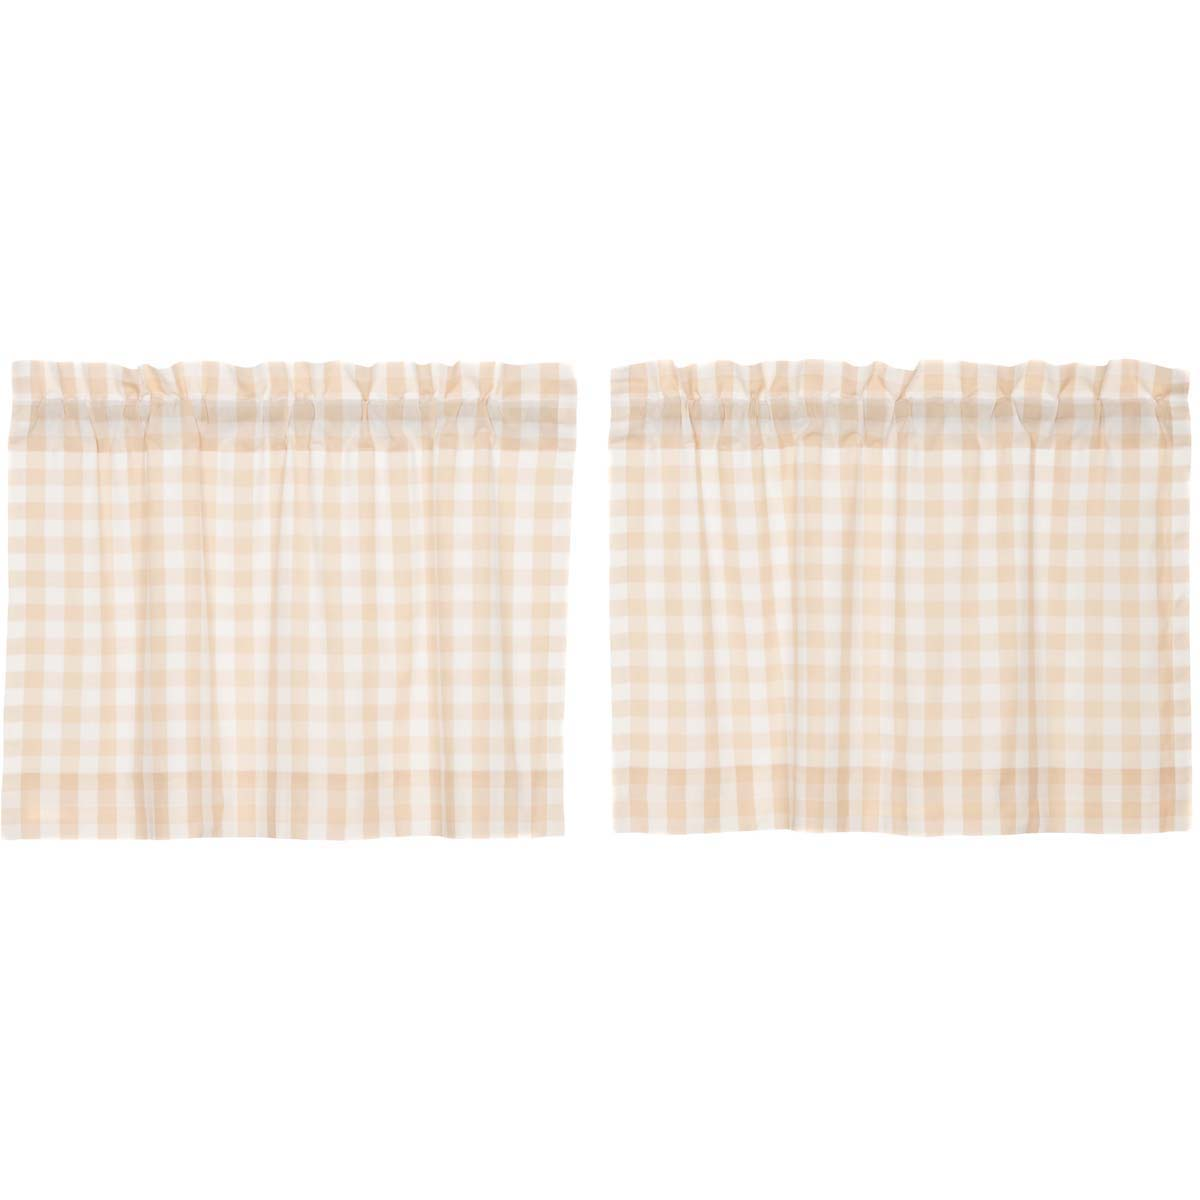 Annie Buffalo Tan Check Tier Set of 2 L24xW36